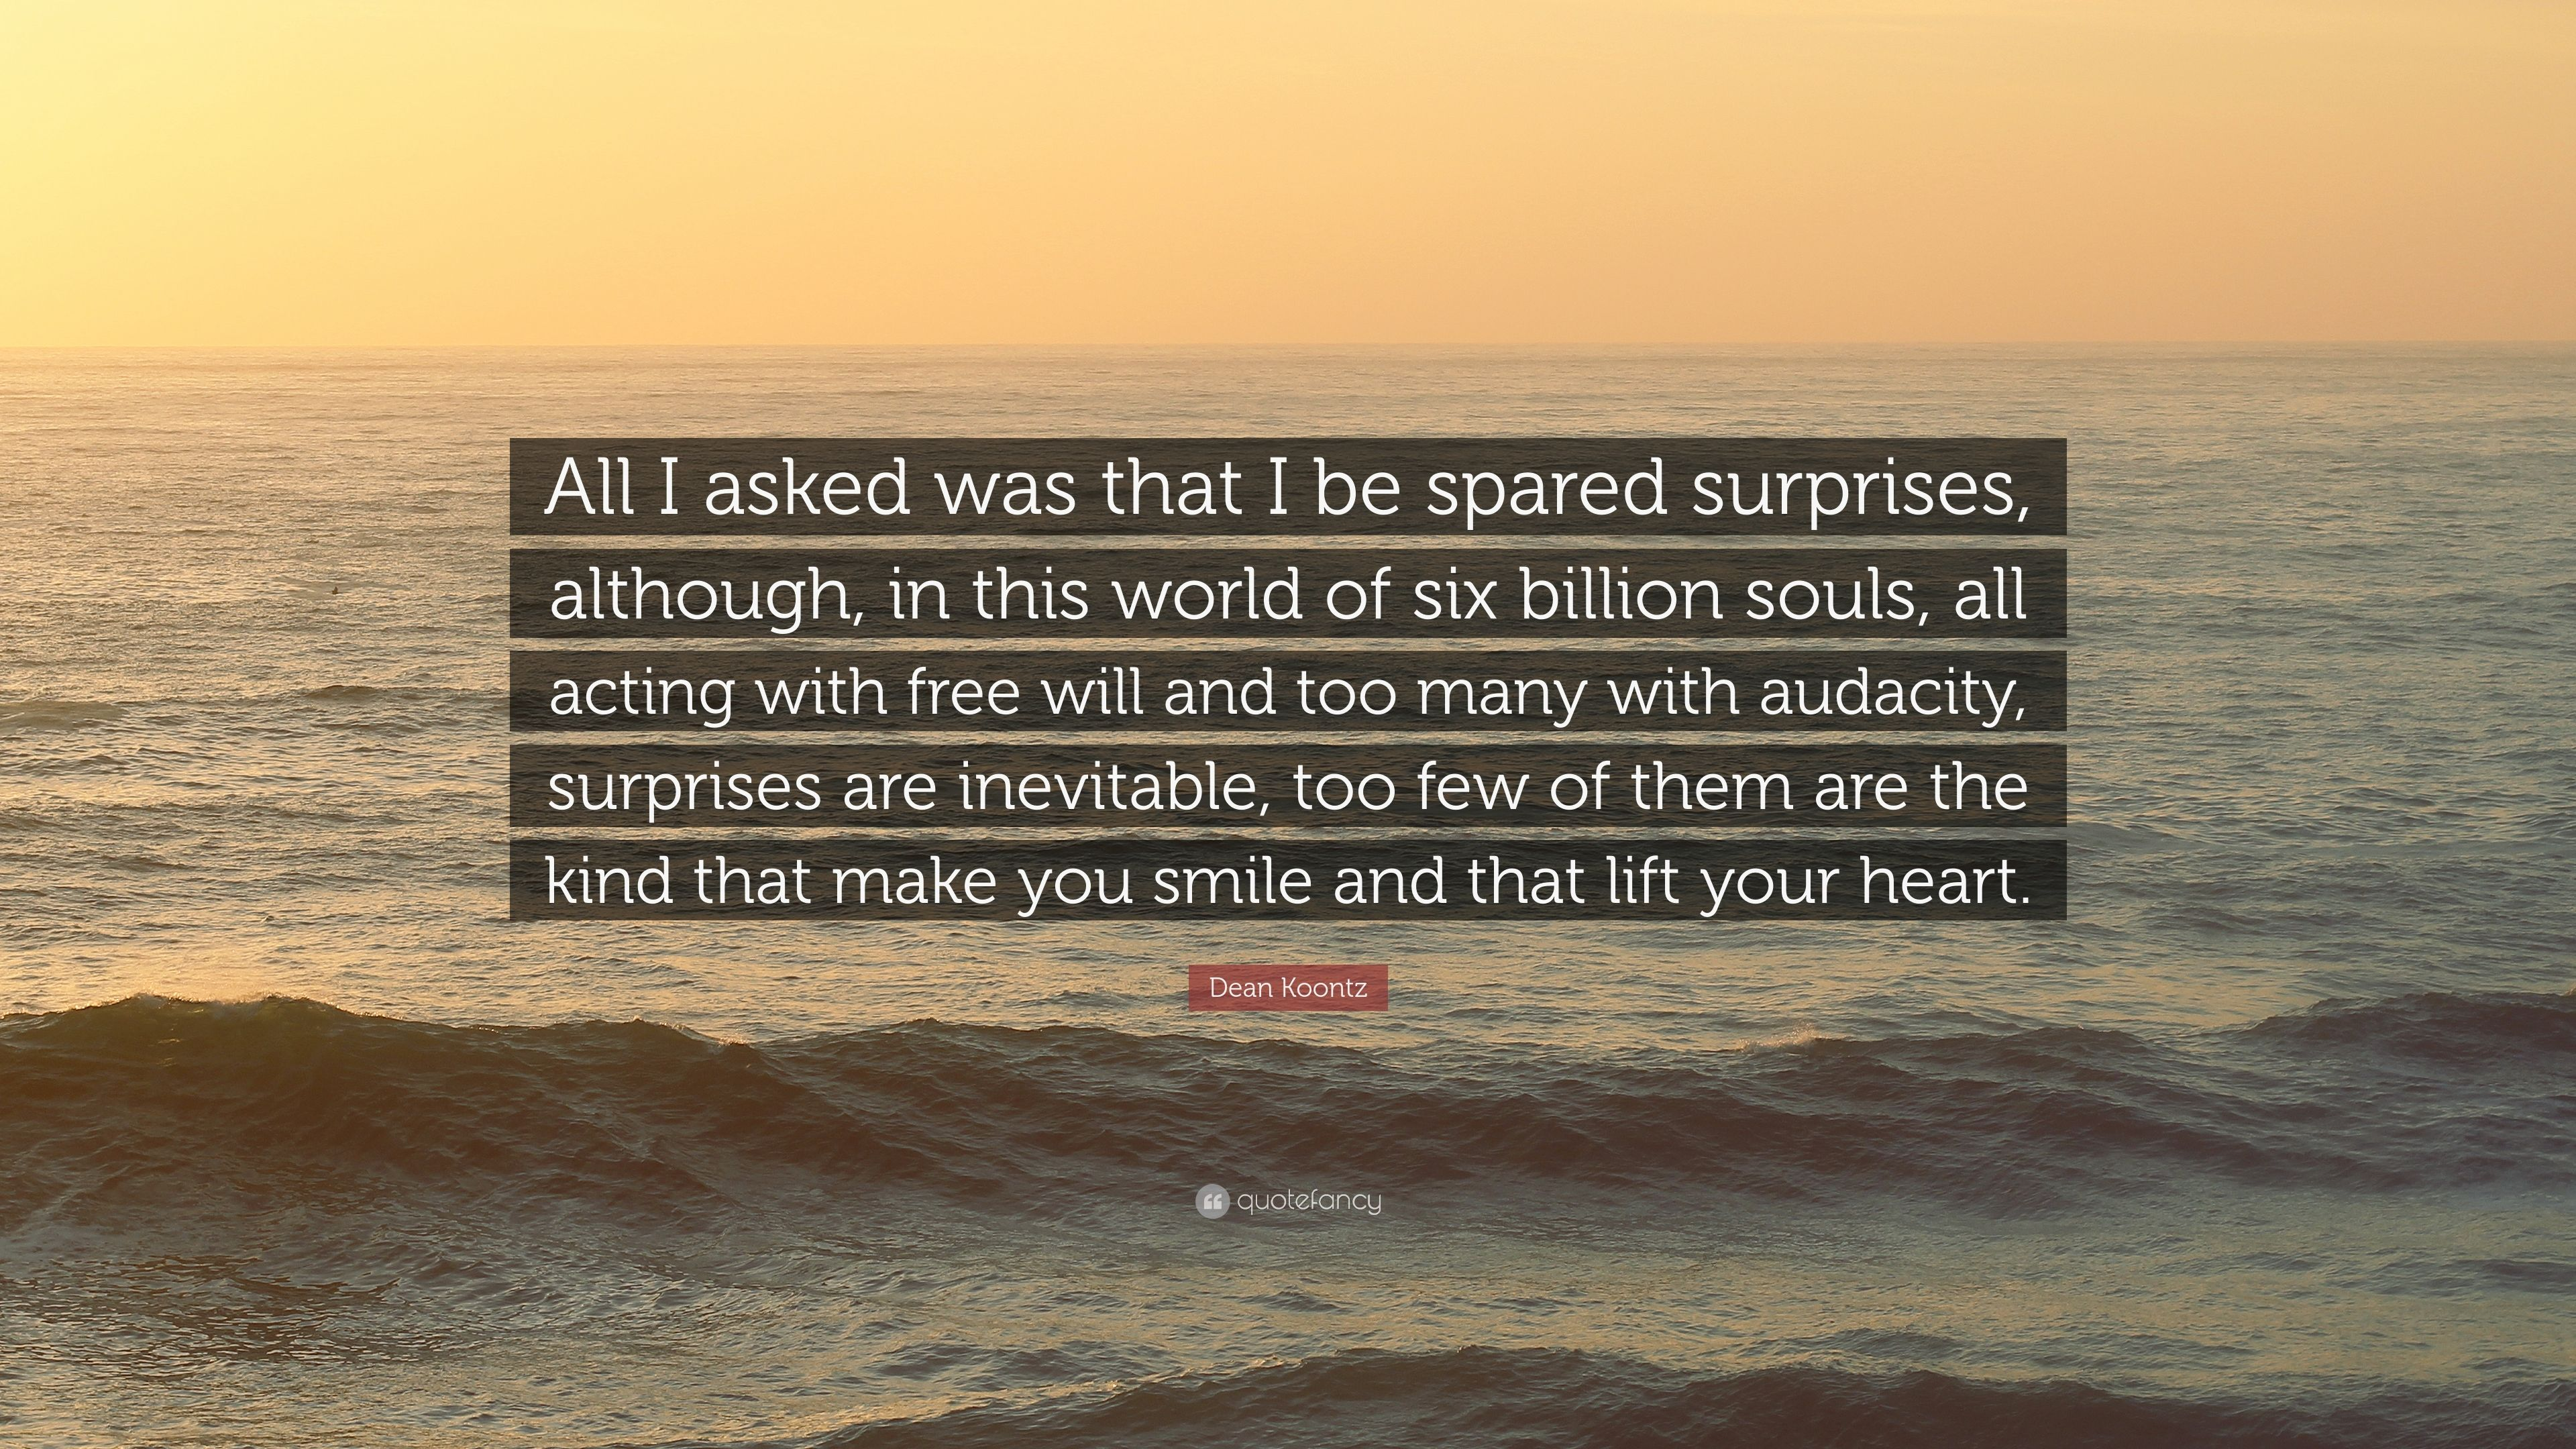 Dean Koontz Quote All I Asked Was That I Be Spared Surprises Although